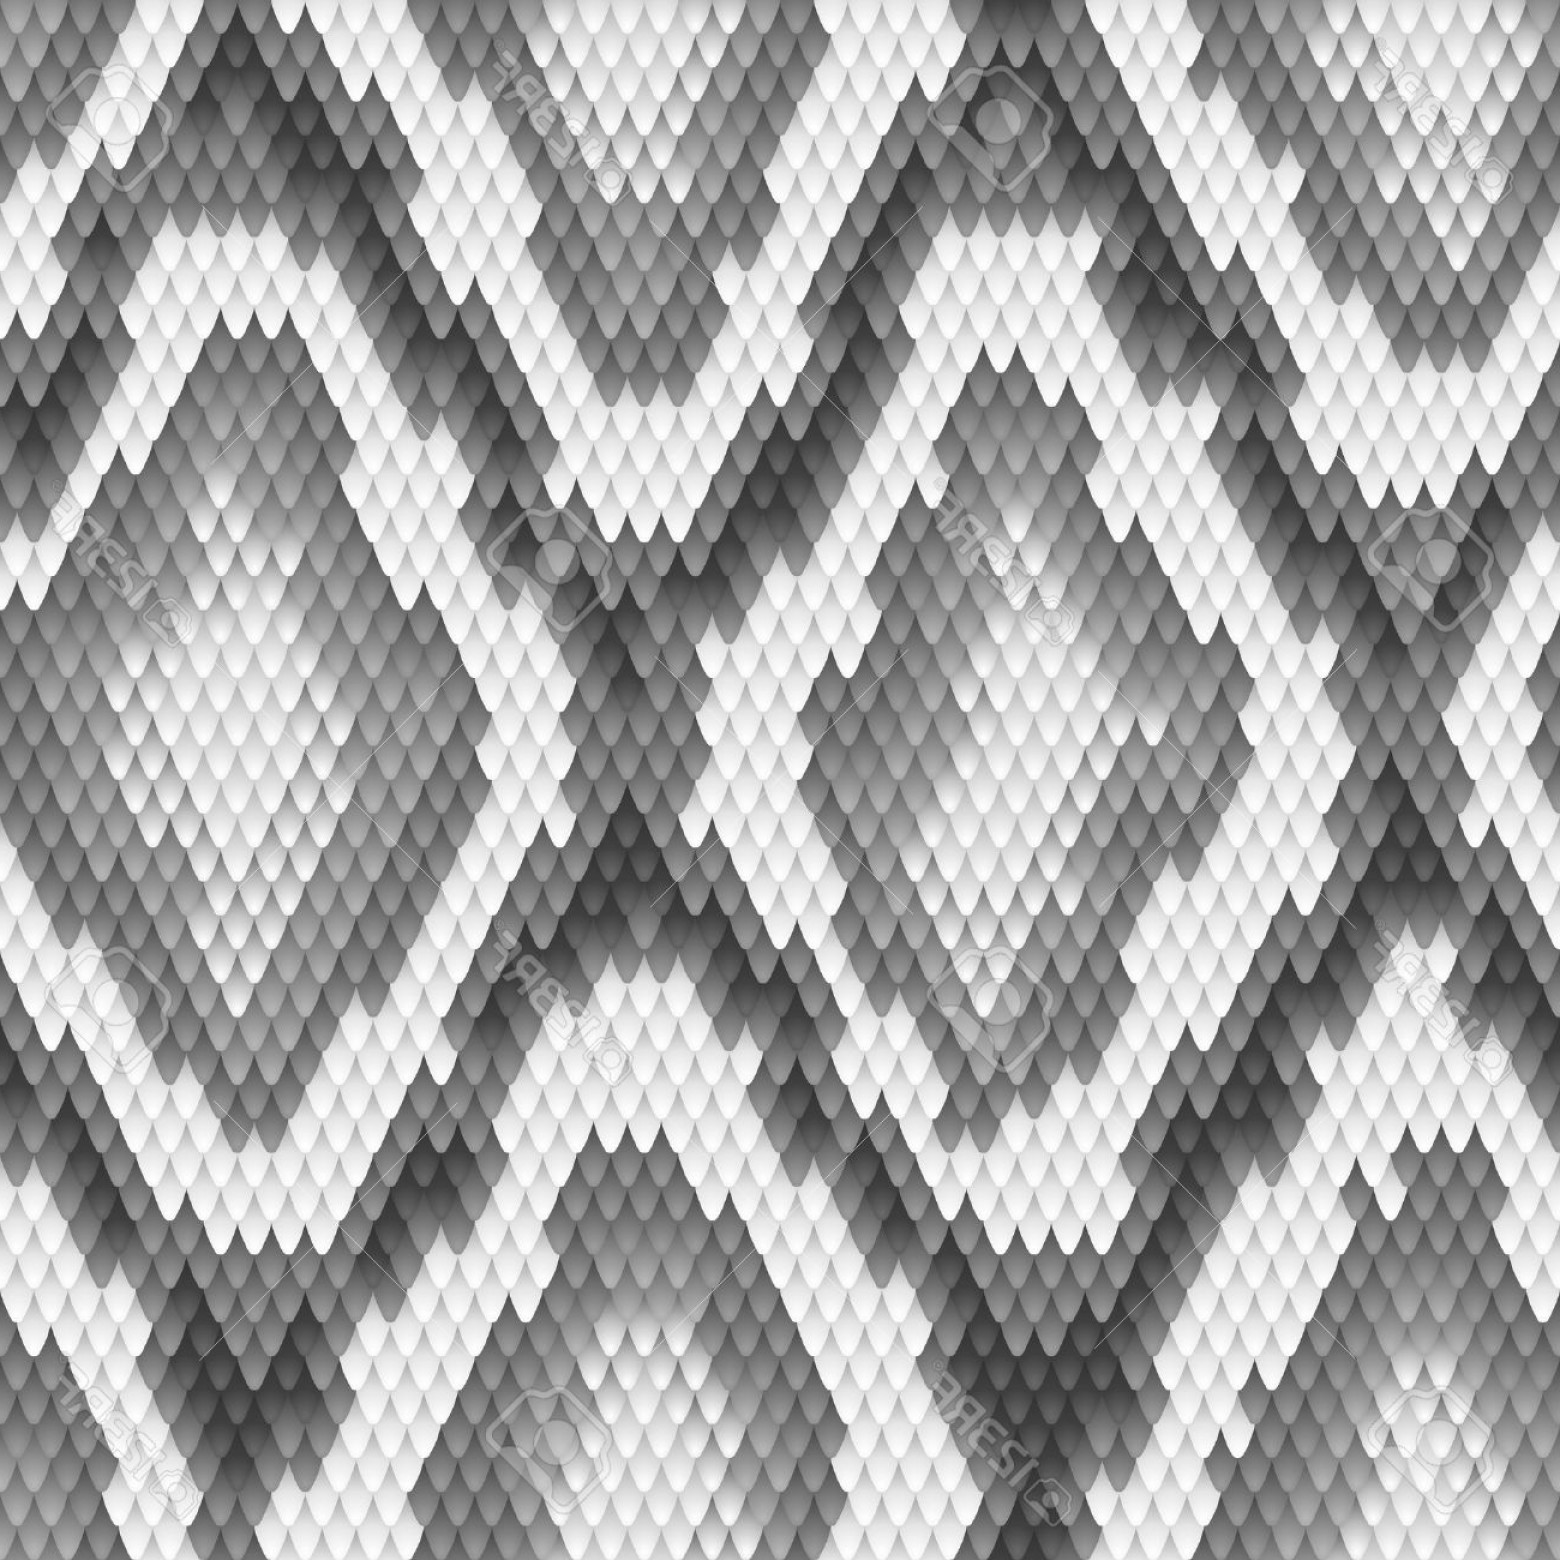 Rattlesnake Skin Vector: Photoseamless Python Snake Skin Pattern Vector Illustration